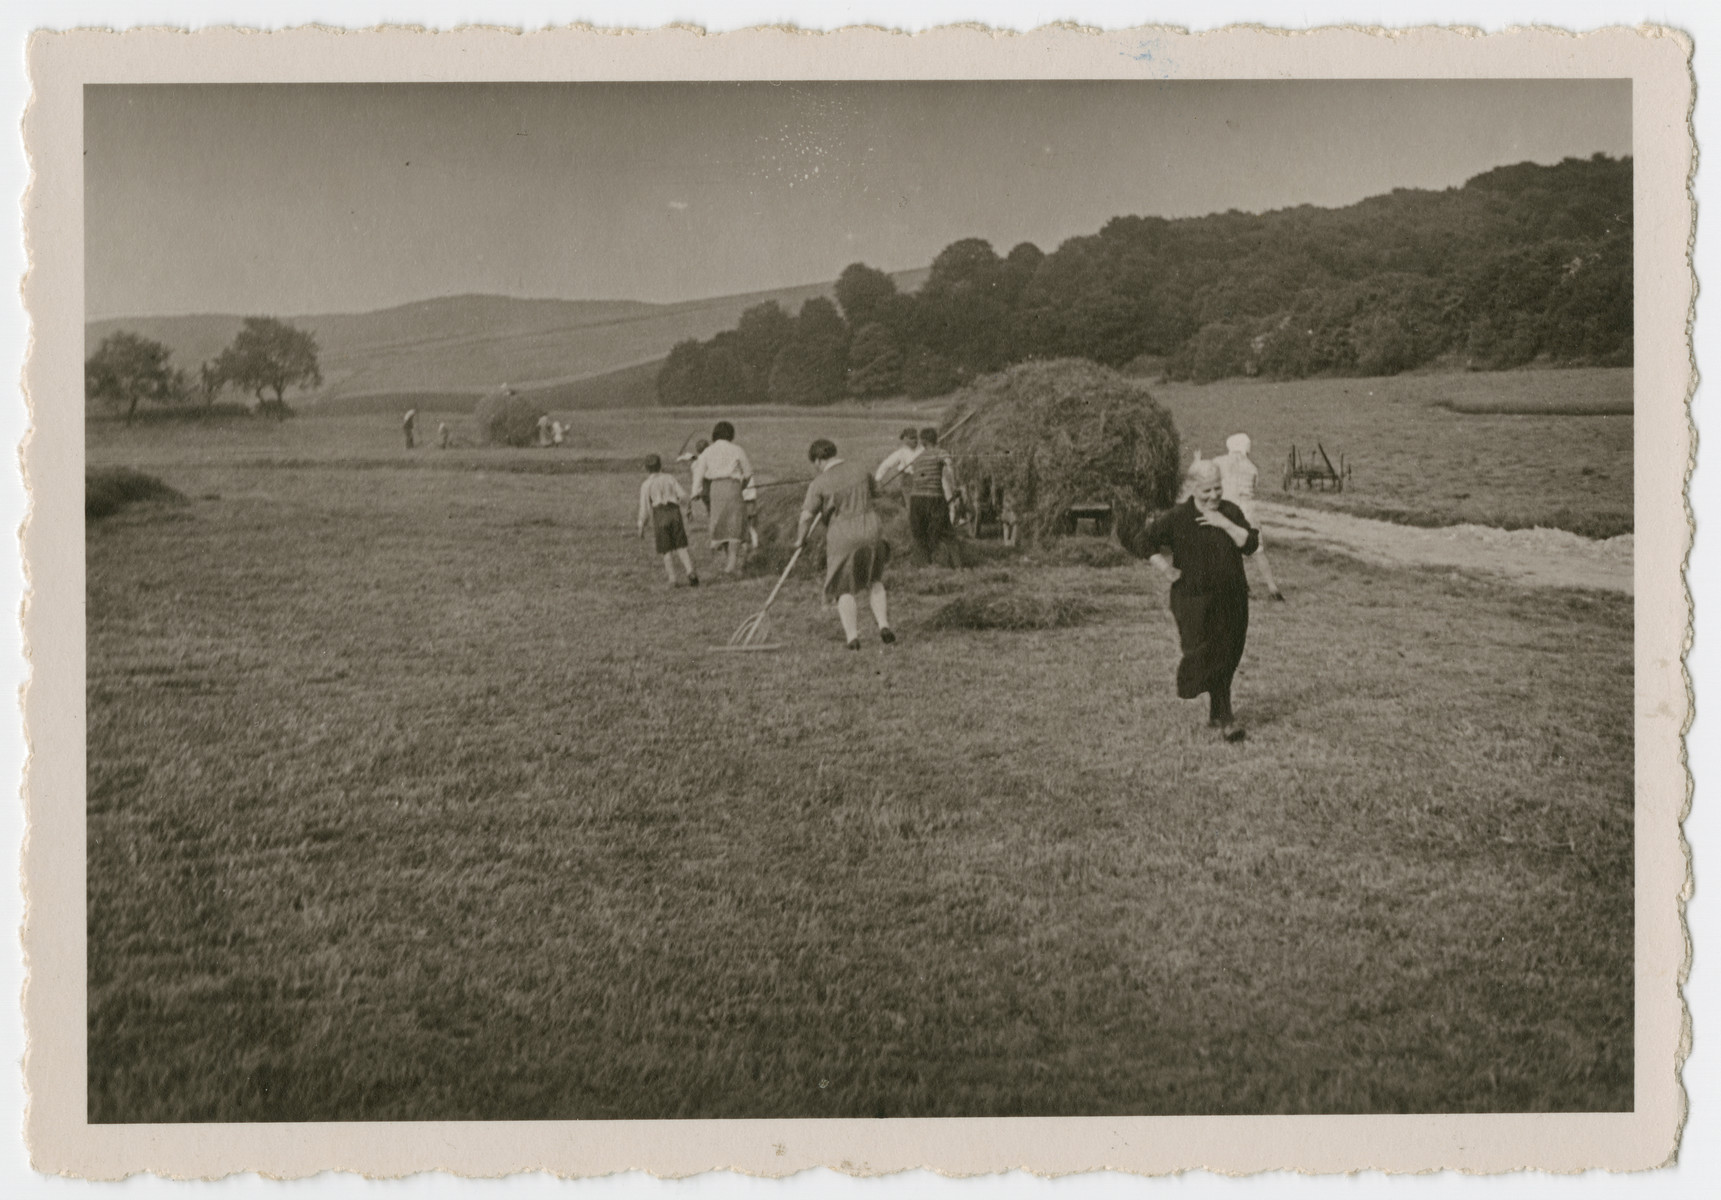 Photograph of extended Isenberg family harvesting hay.   Pictured are: Erna Isenberg (in skirt), Rosa Isenberg (raking), Julie Isenberg (foreground, black dress), and Sigmund Isenberg (with cap next to hay cart).